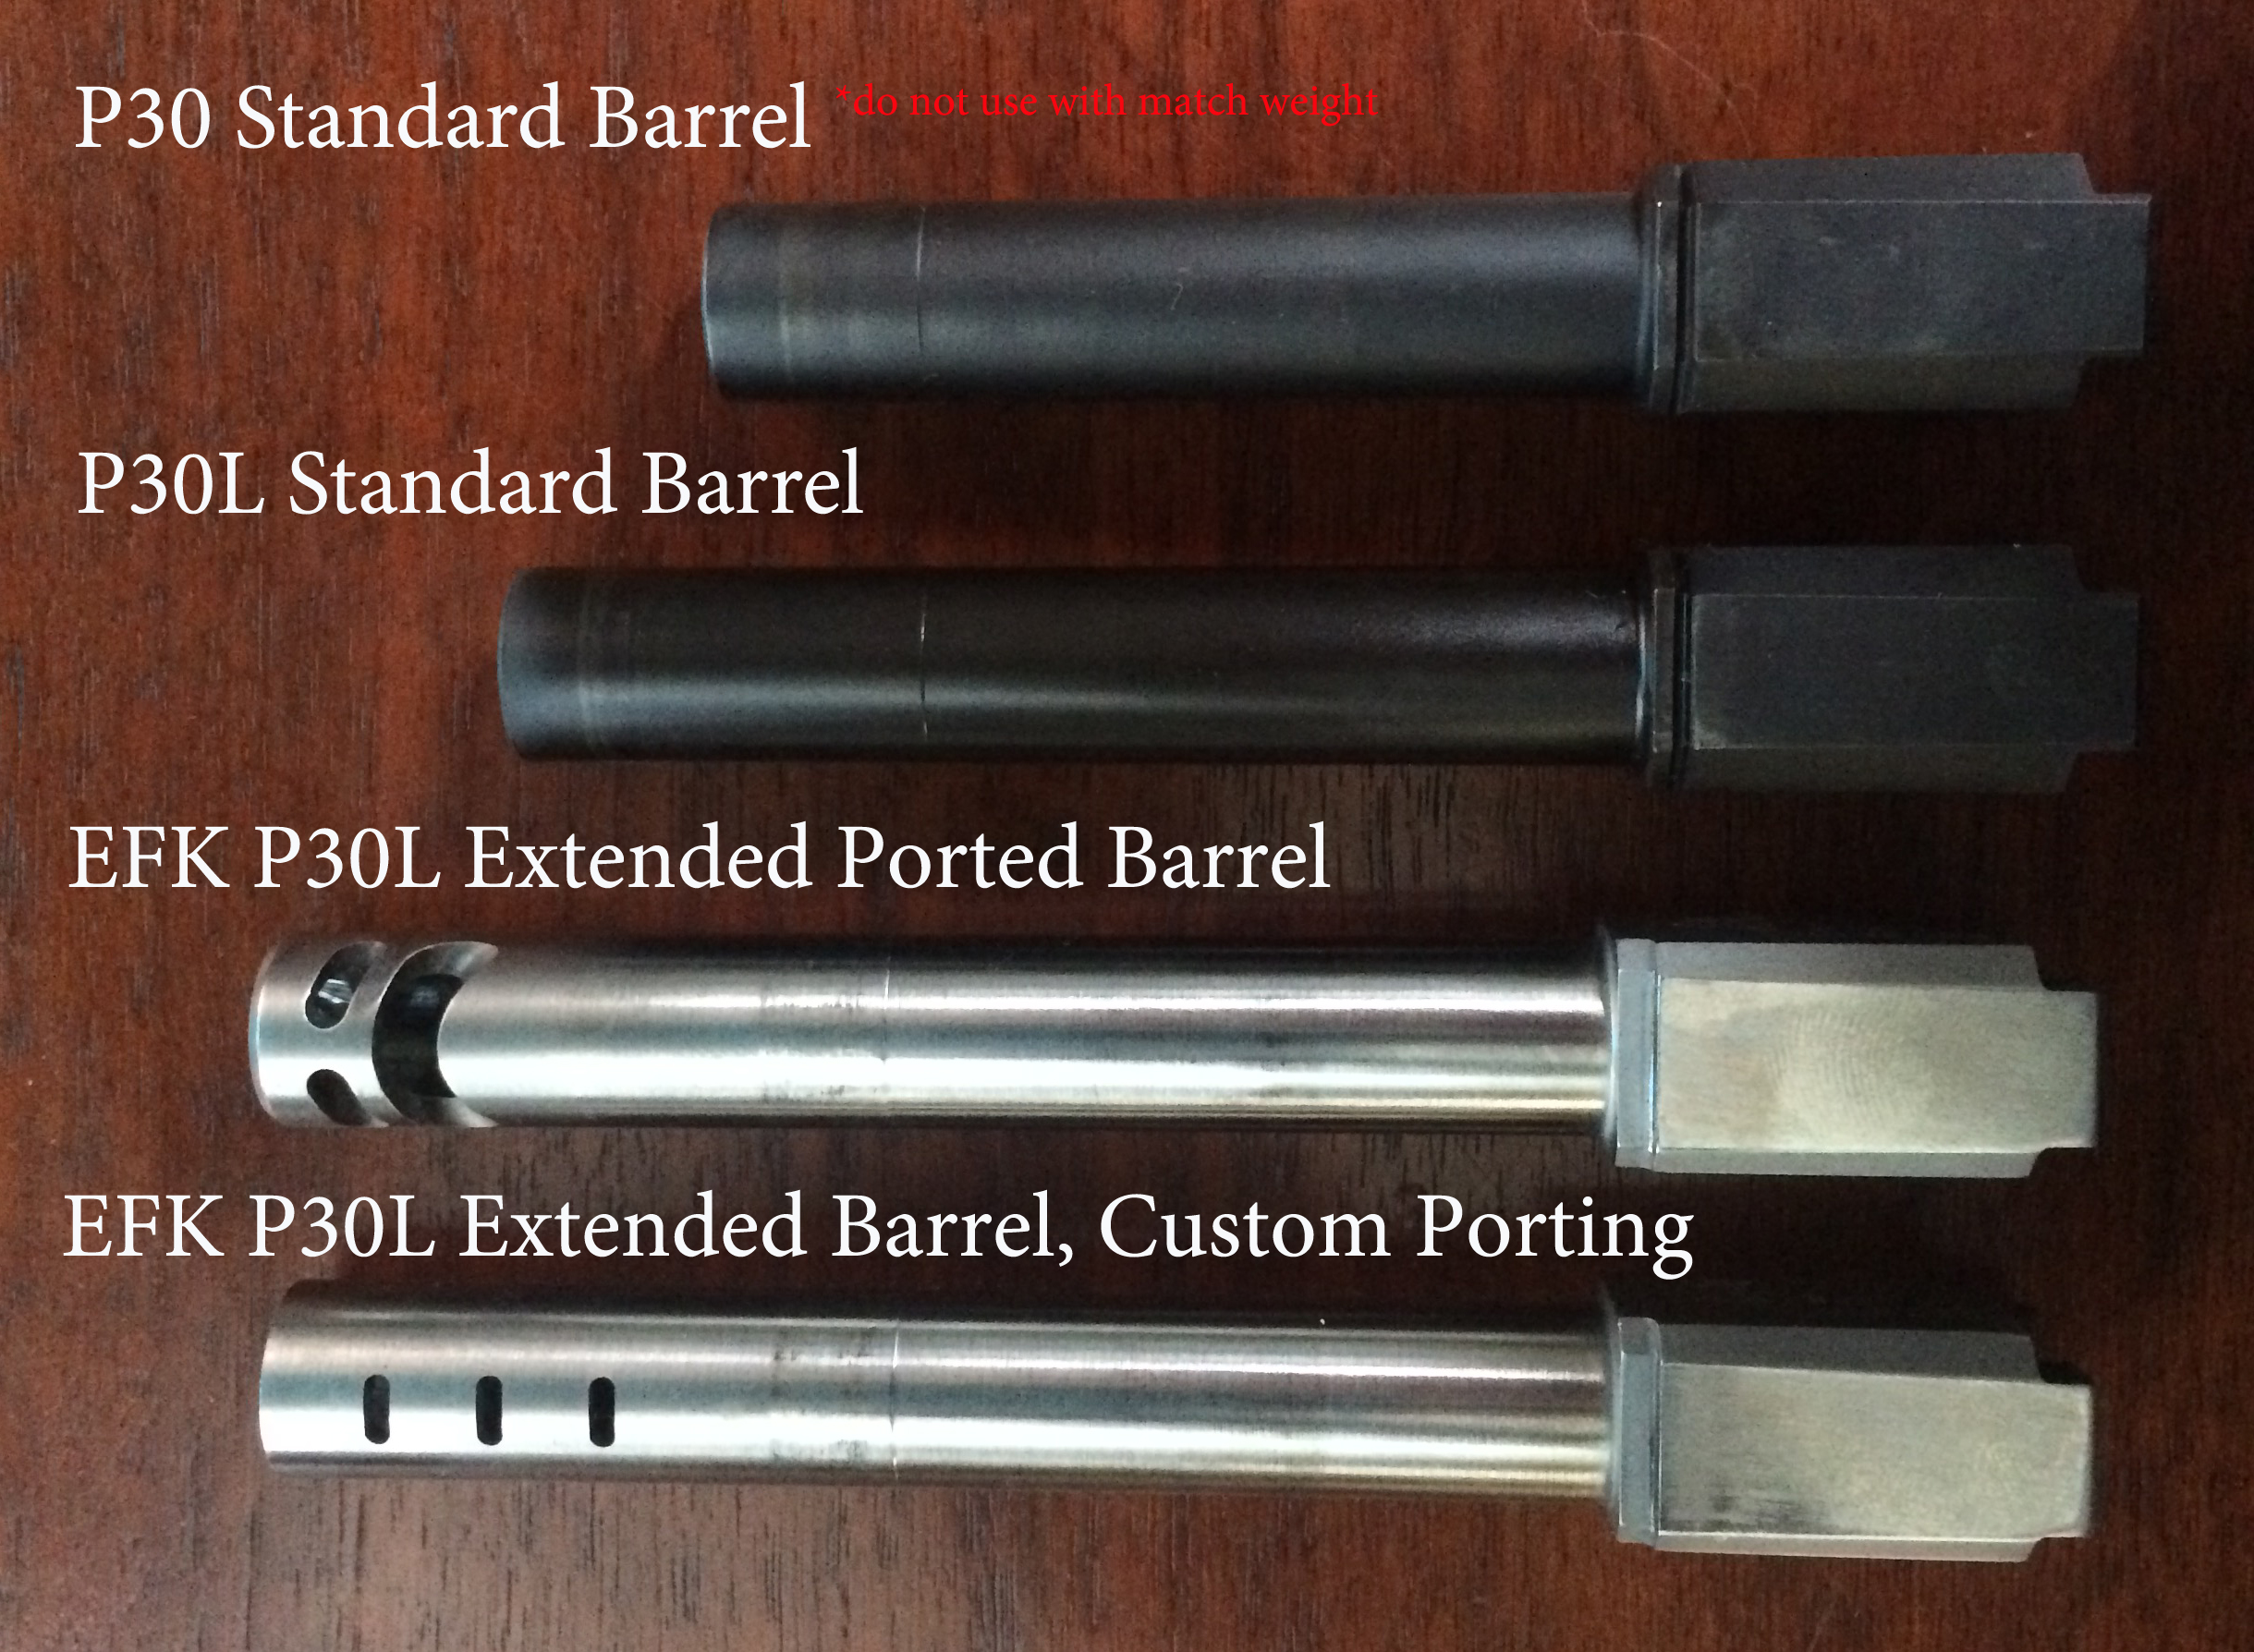 Barrels for the Match Weight